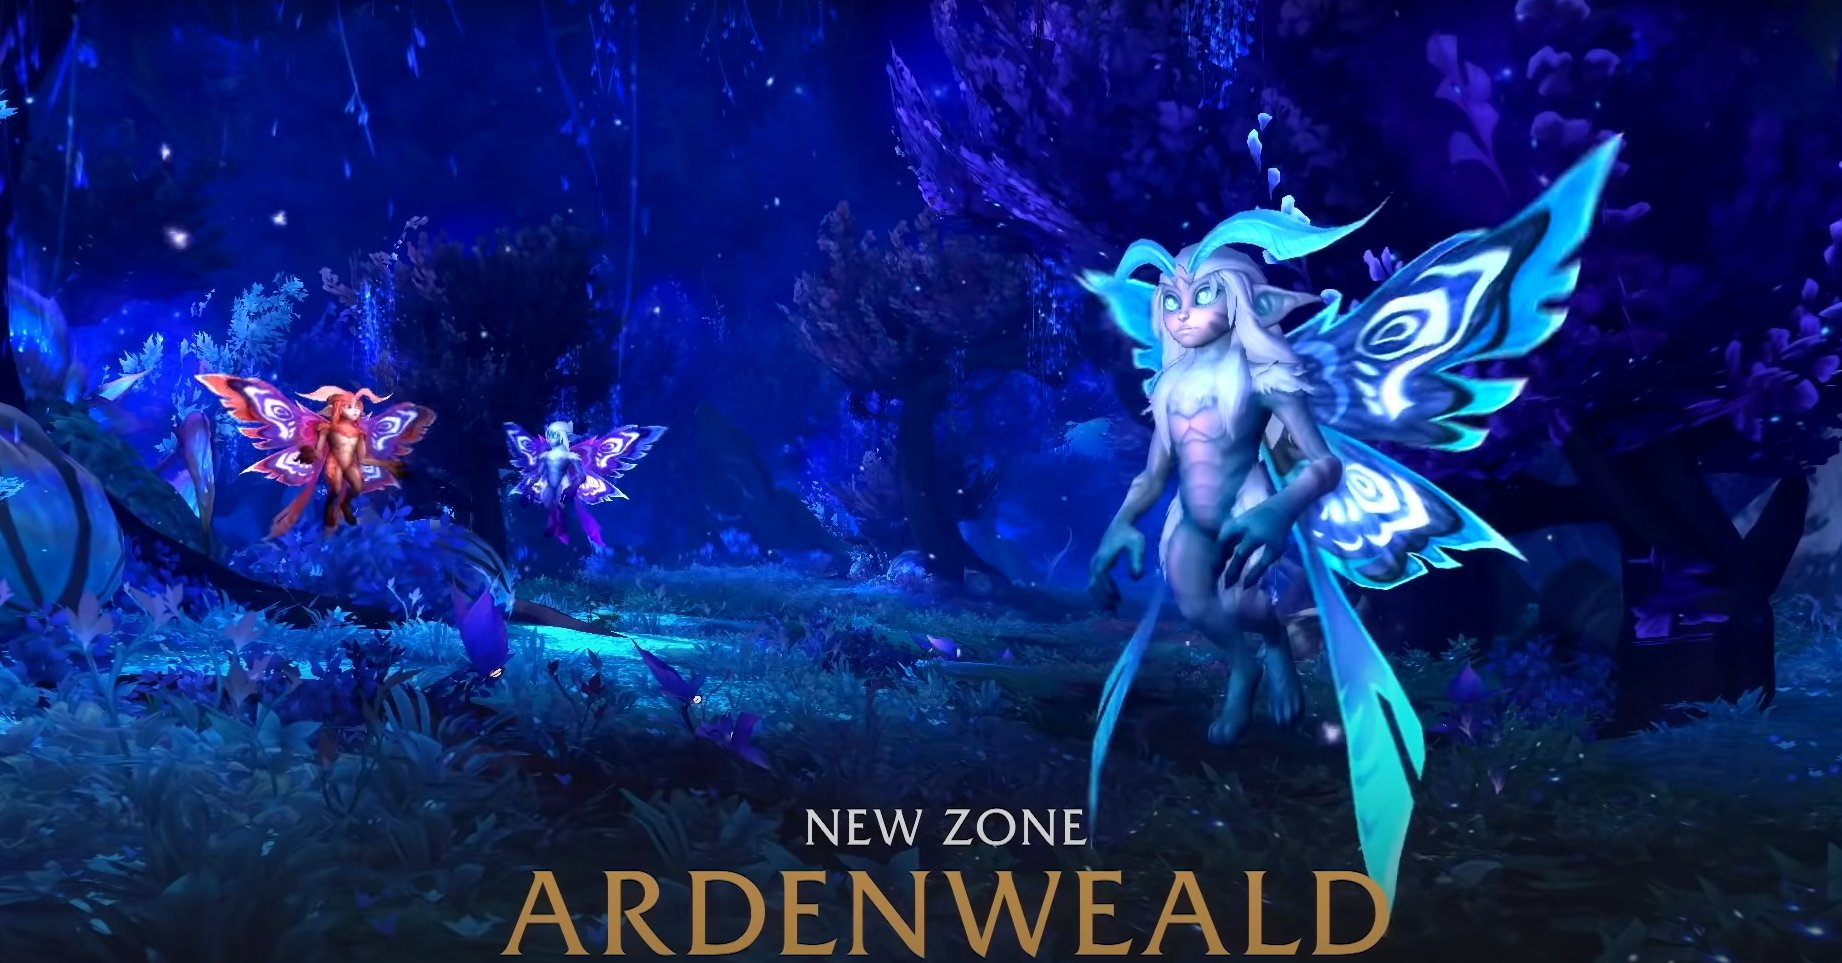 A Promotional Campaign Has Blizzard Granting A New Adorable Fae-Inspired Transmog Set To World Of Warcraft Subscribers